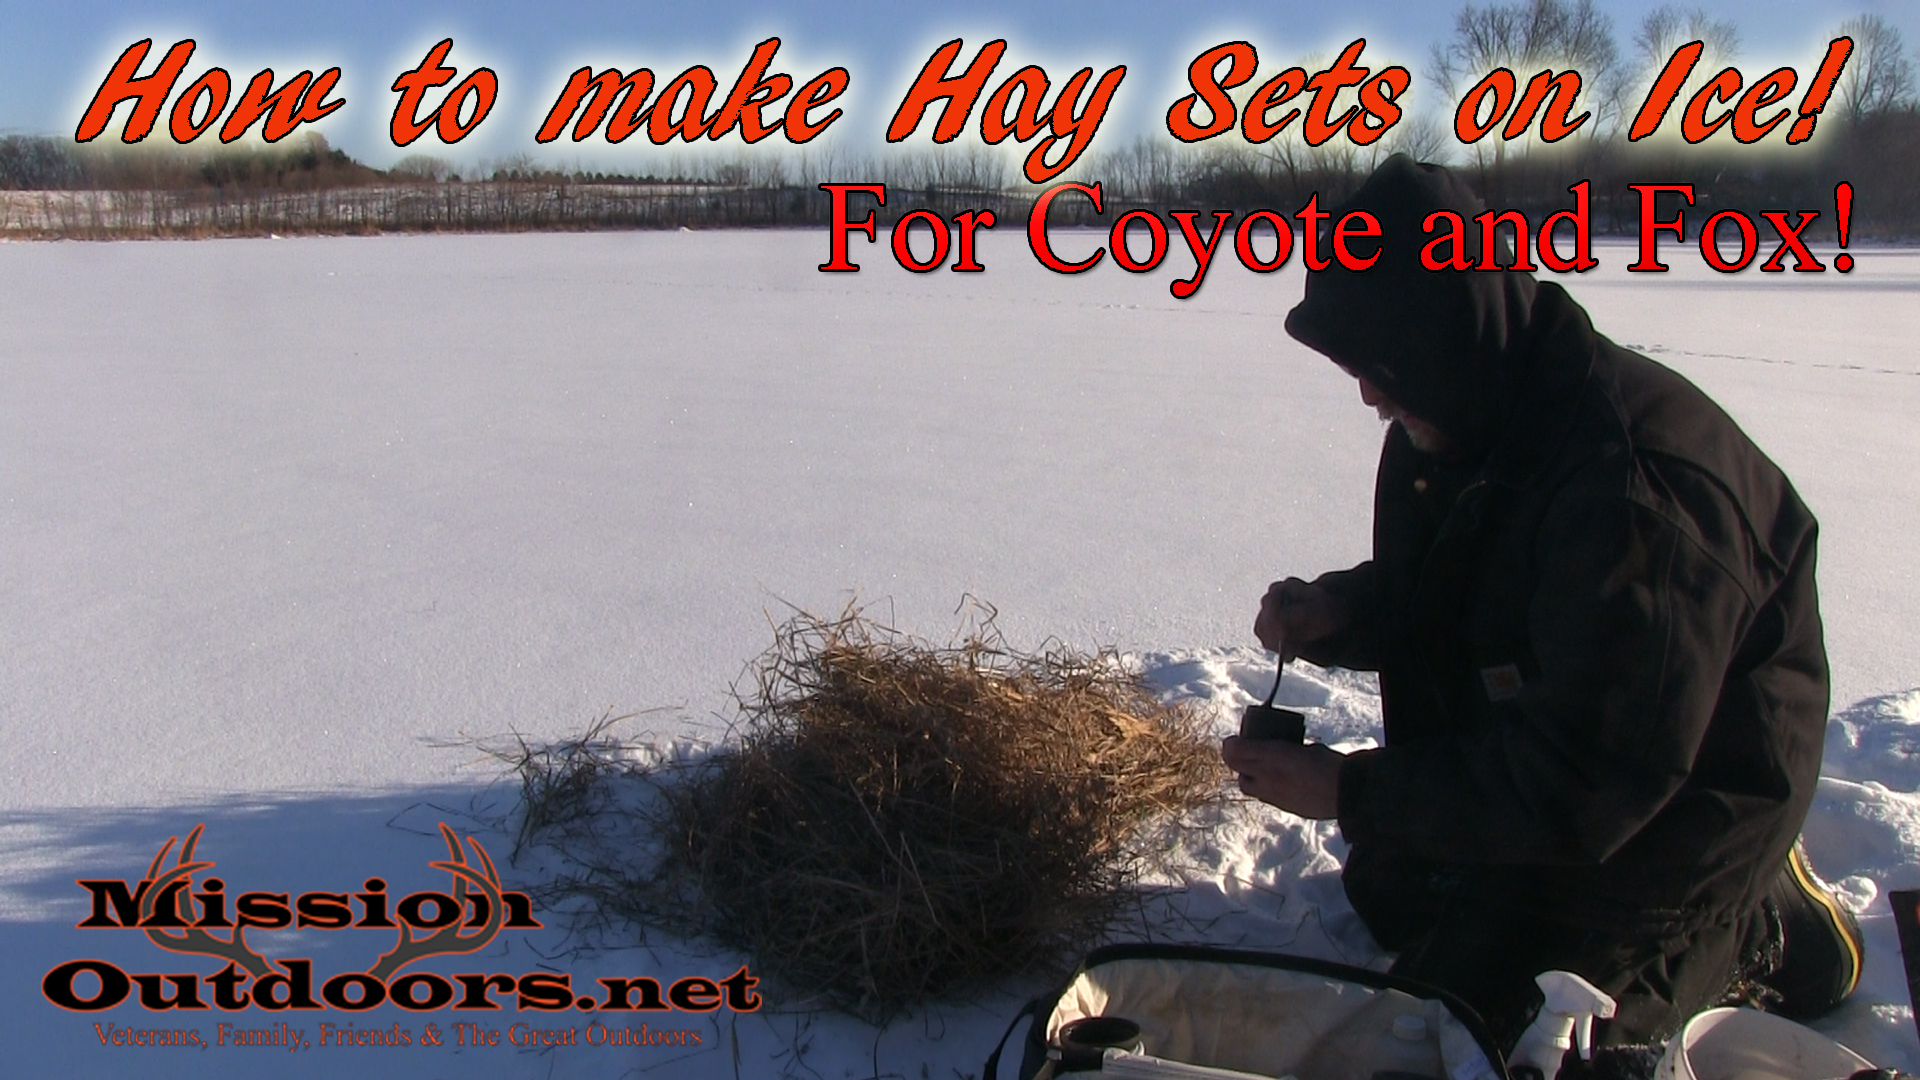 How to make Hay Sets on Ice for Coyotes and Fox